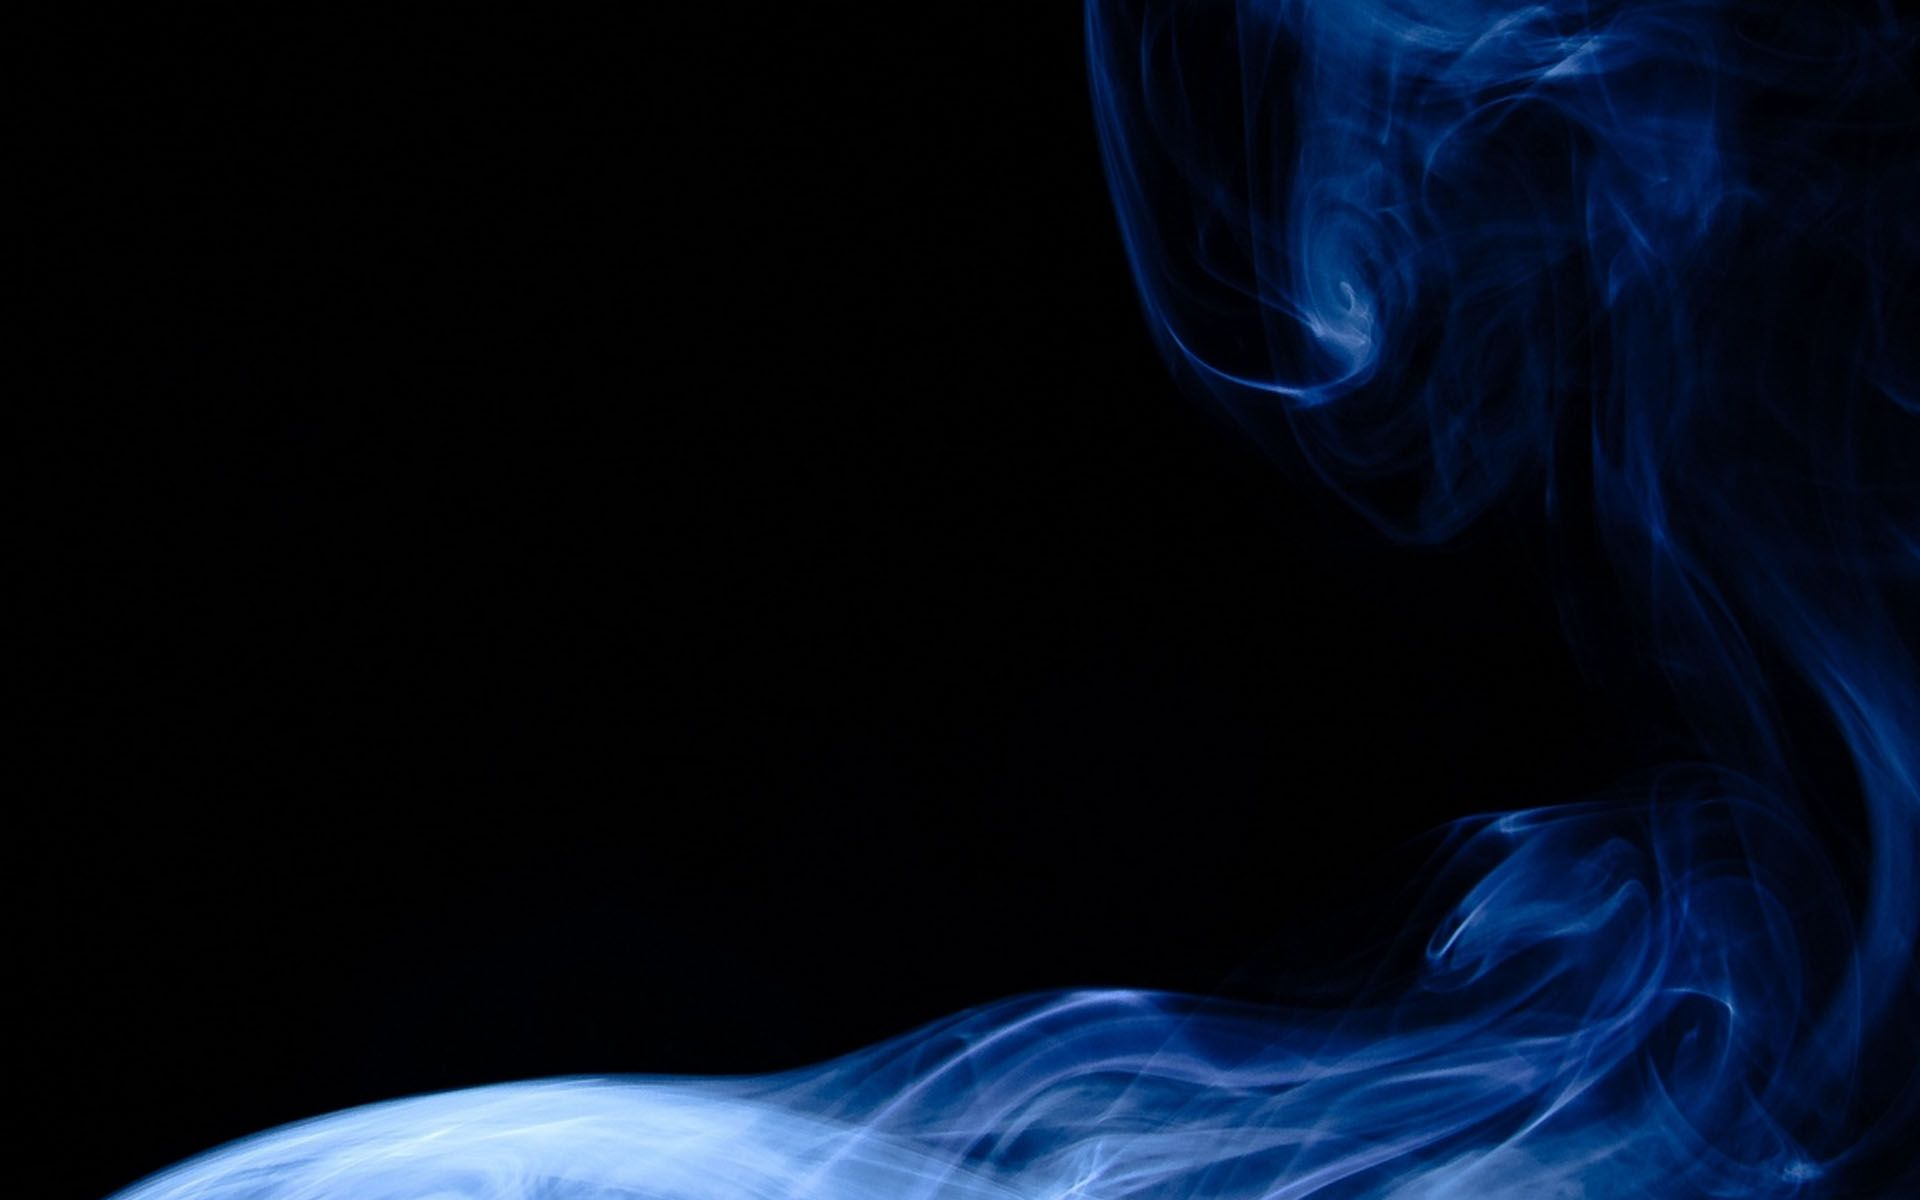 Dark Smoke Background Hd Wallpaper Blue Background Wallpapers Background Hd Wallpaper Dark Blue Background